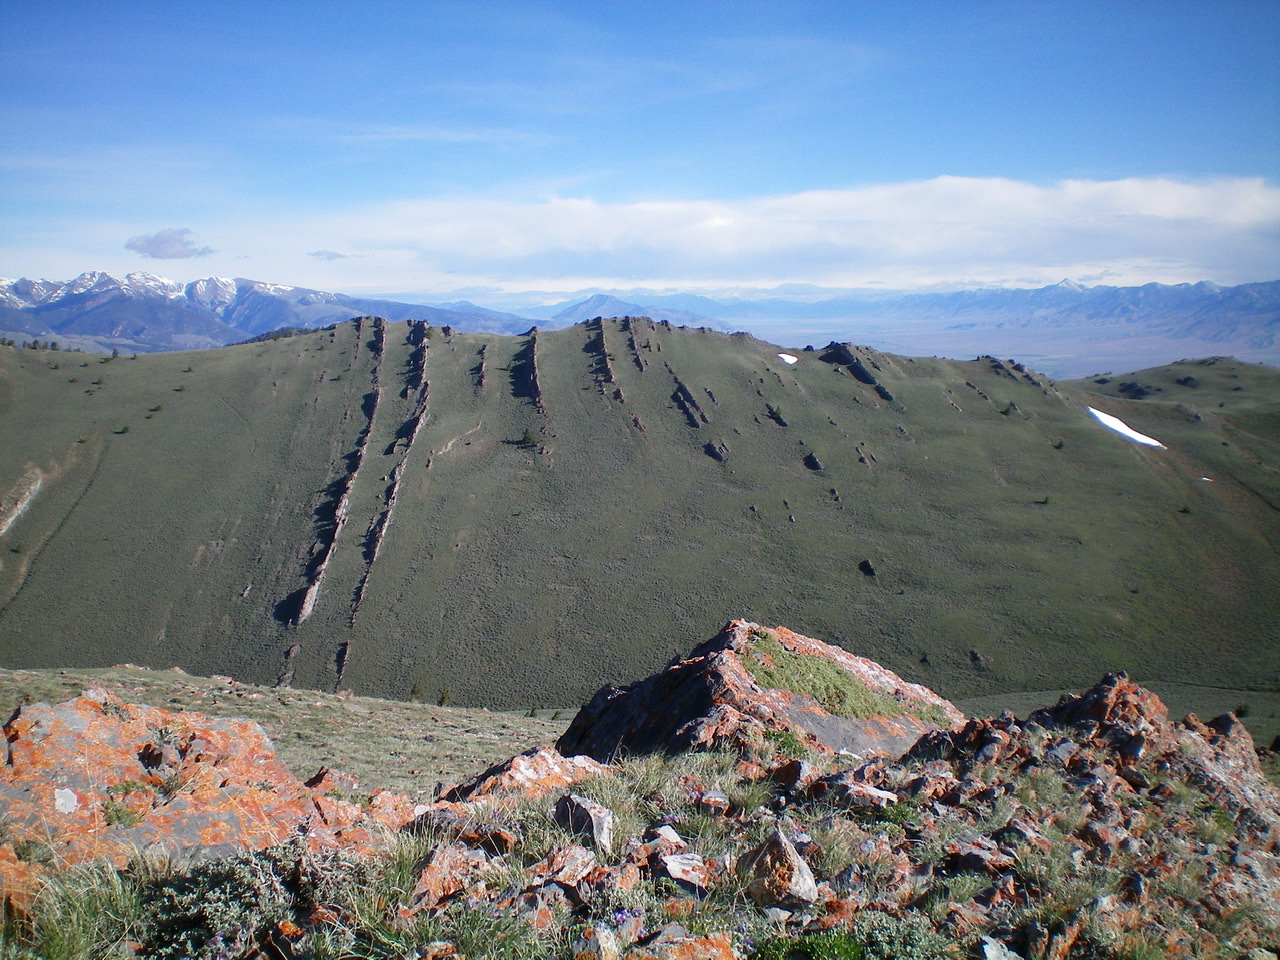 Peak 9004 as viewed from the summit of Jumpoff Peak. The two potential summits are VERY CLOSE in height. The left/west summit is considered the high point since it is a measured summit. Livingston Douglas Photo